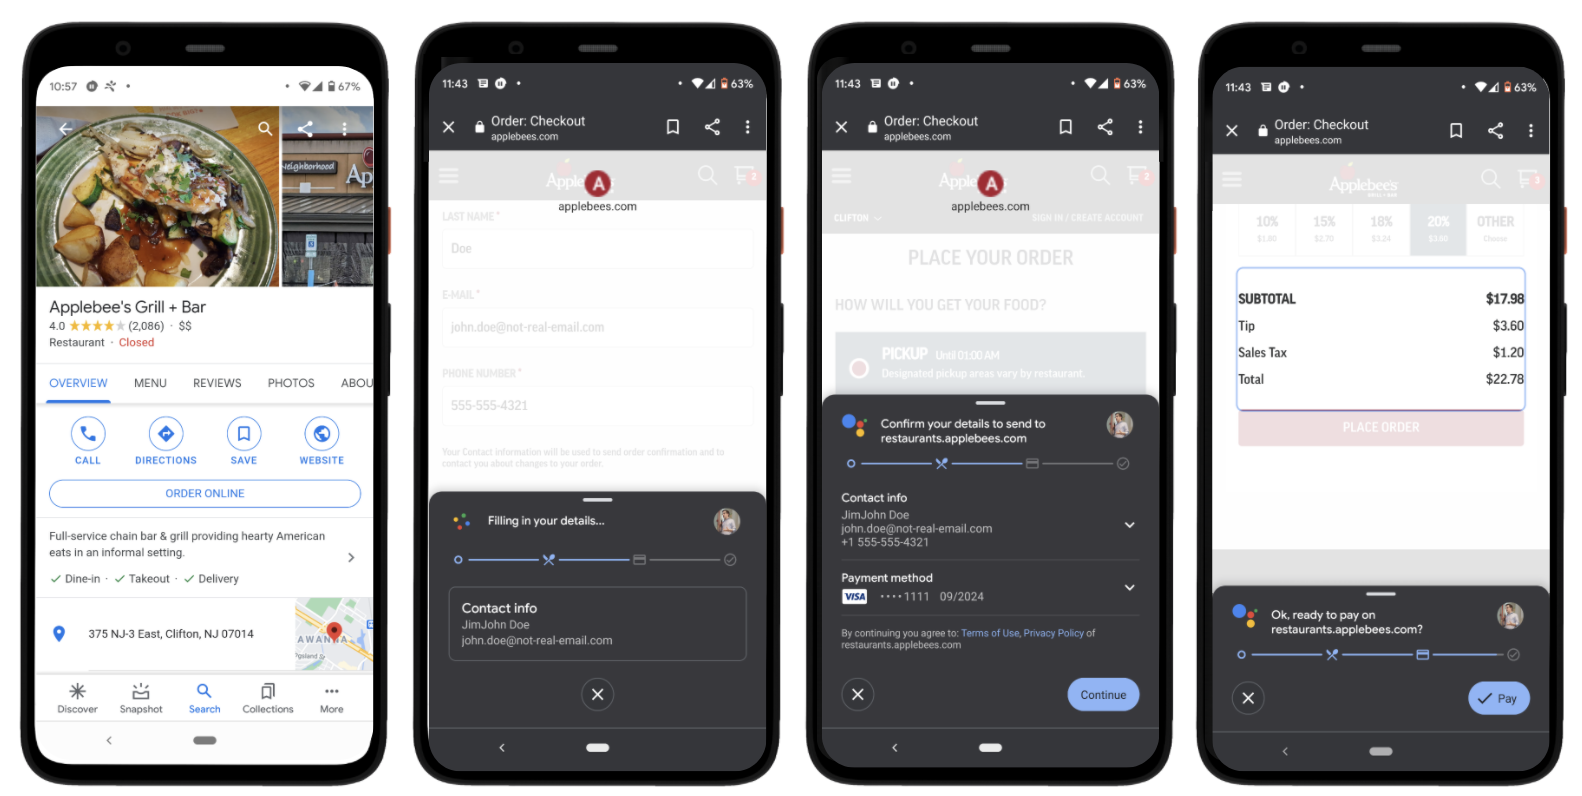 Google Duplex for web food order payment checkout screenshots. A set of four screenshots showing the process of ordering from Applebee's Grill and Bar via the Google app on Android.